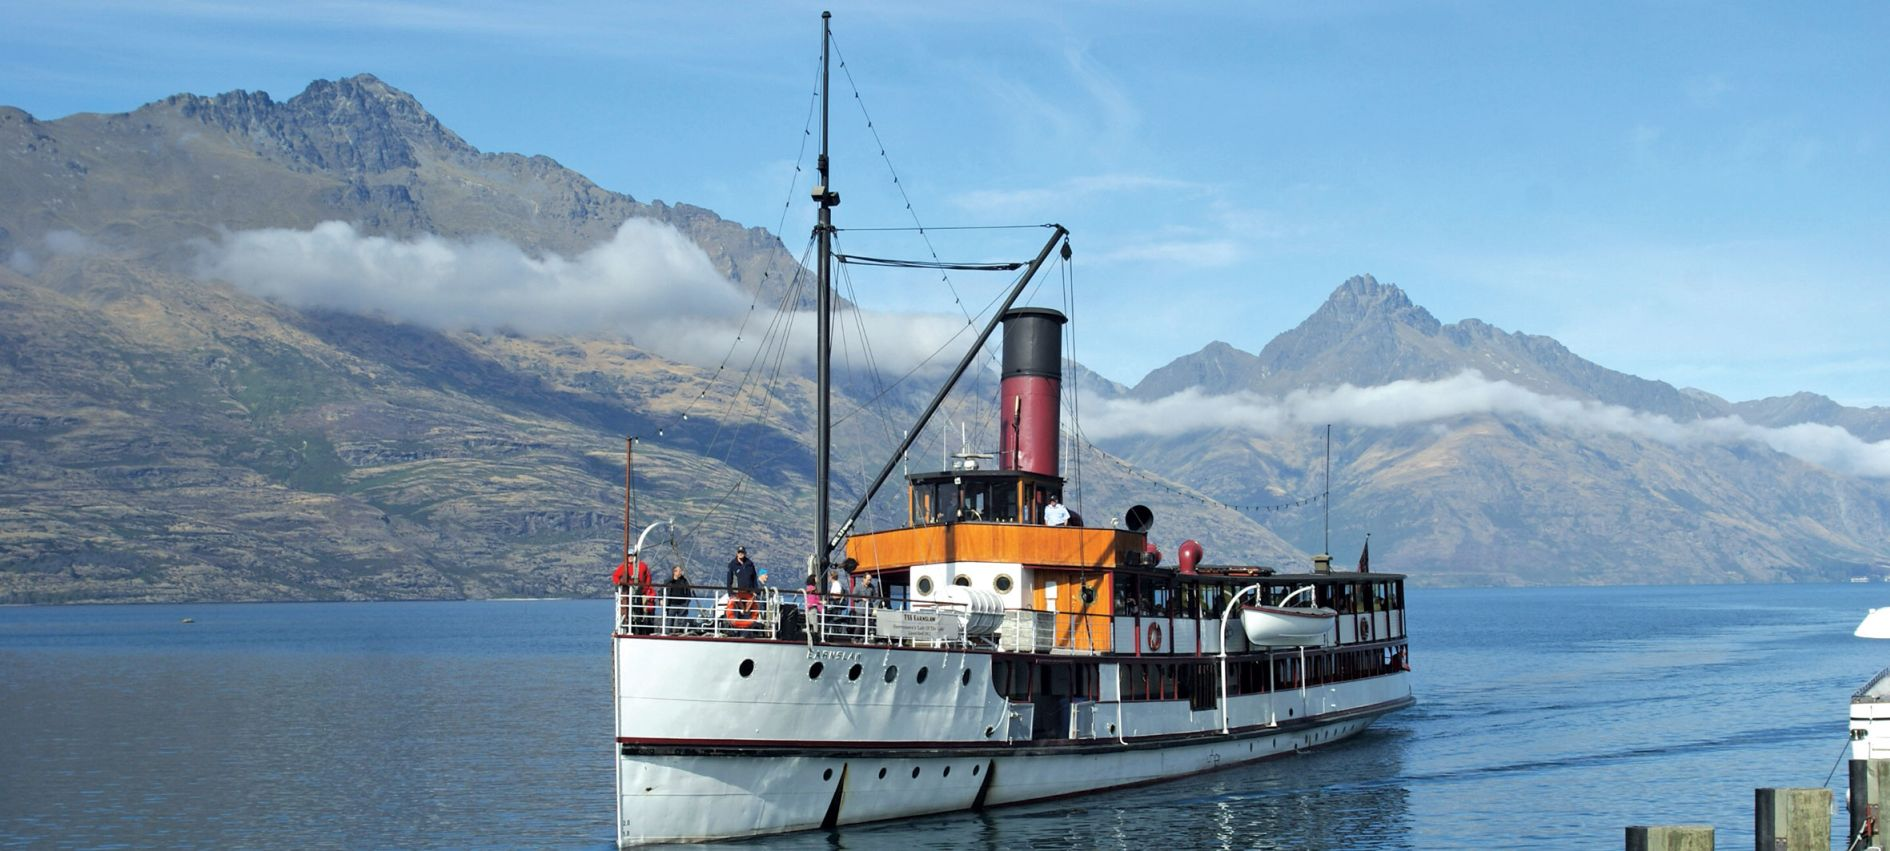 Nautilus Telegraph feature: Ships of the past: TSS Earnslaw